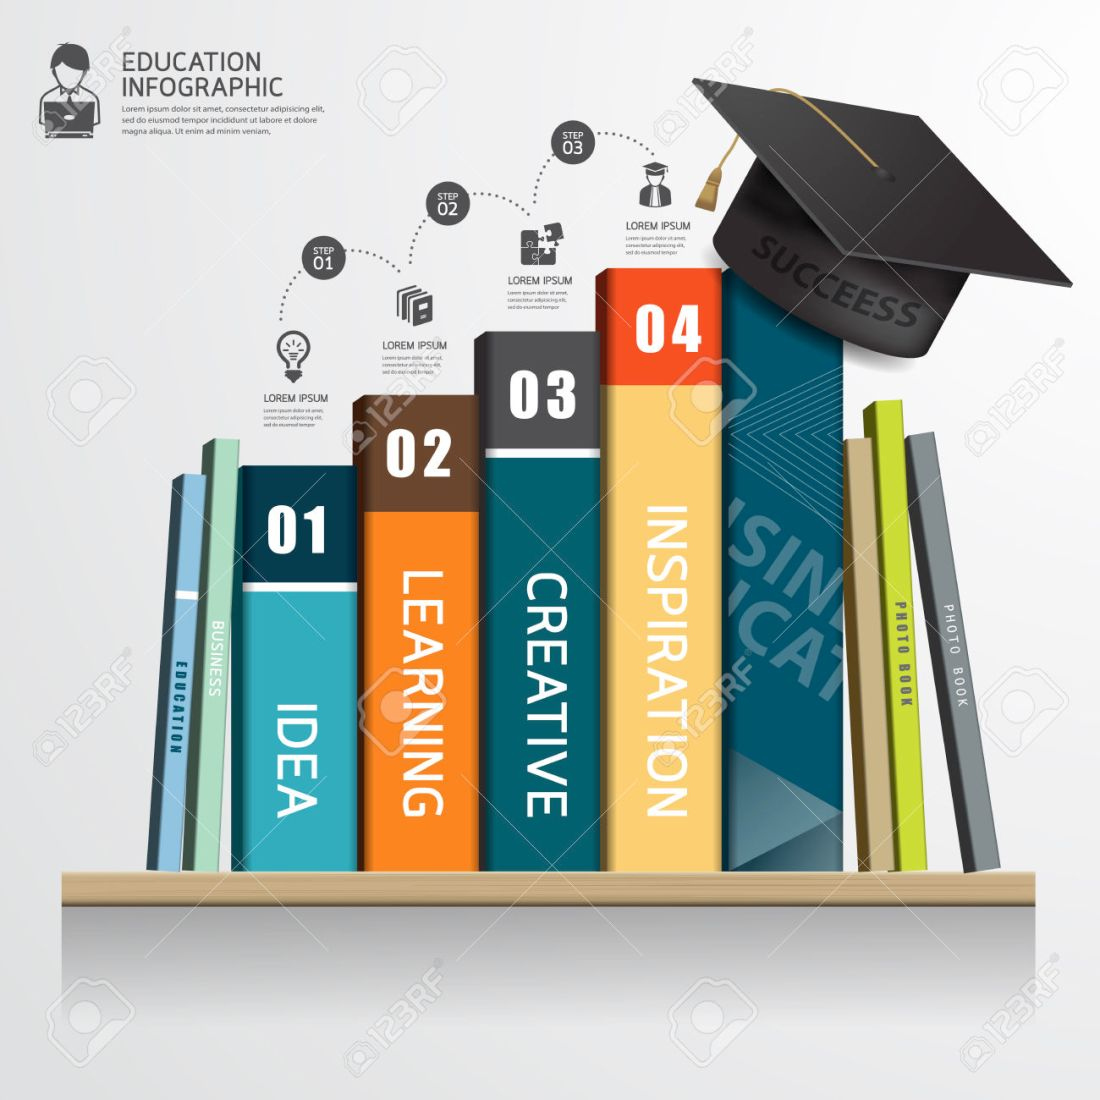 37451423-vector-infographic-success-education-concept-row-of-books-and-graduation-cap-on-shelf-stock-vector